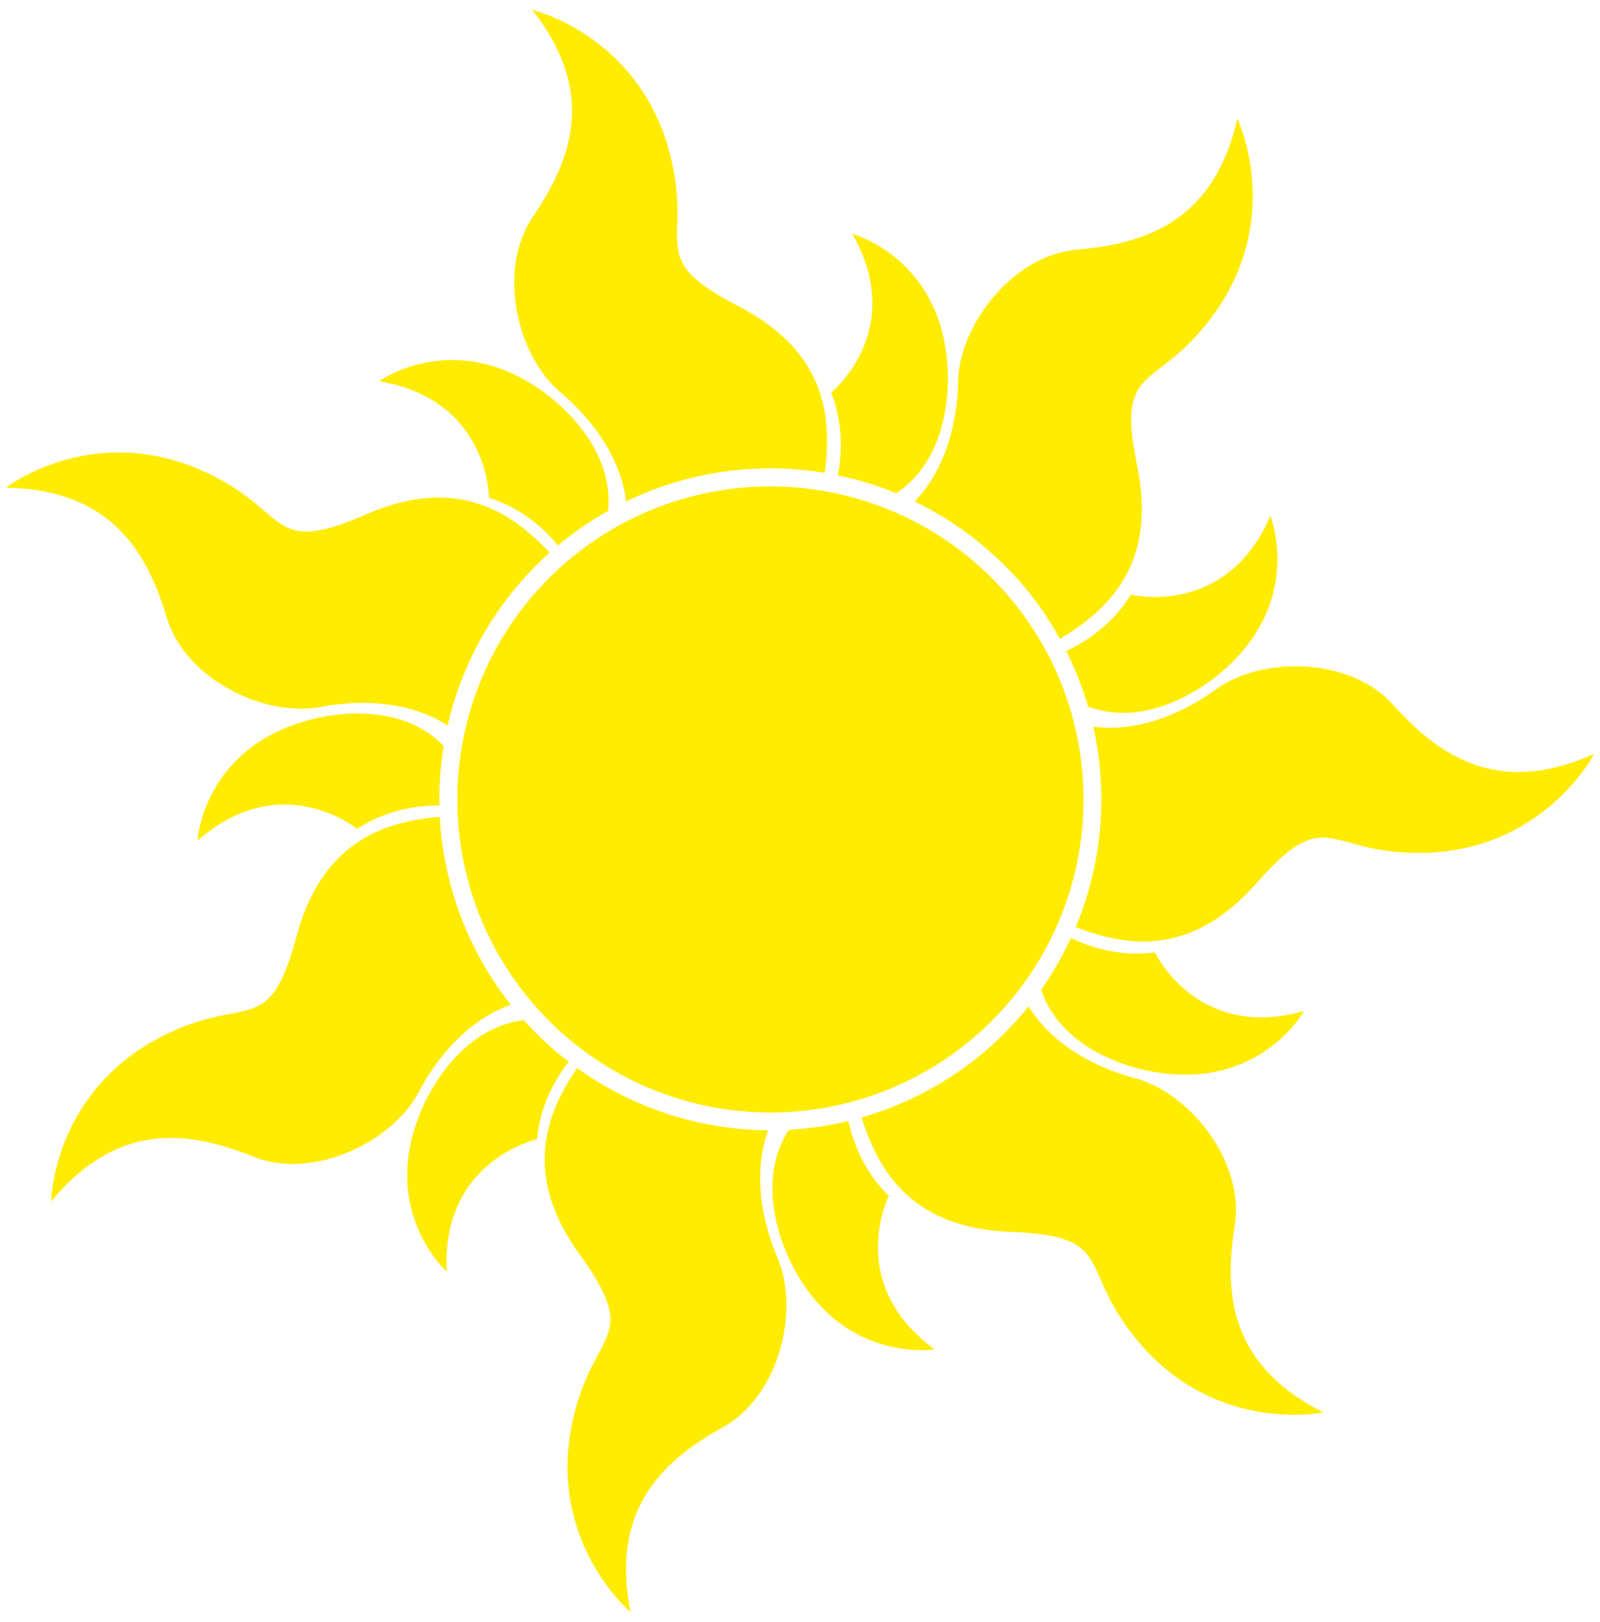 hight resolution of sun transparent background clipart library free clipart images